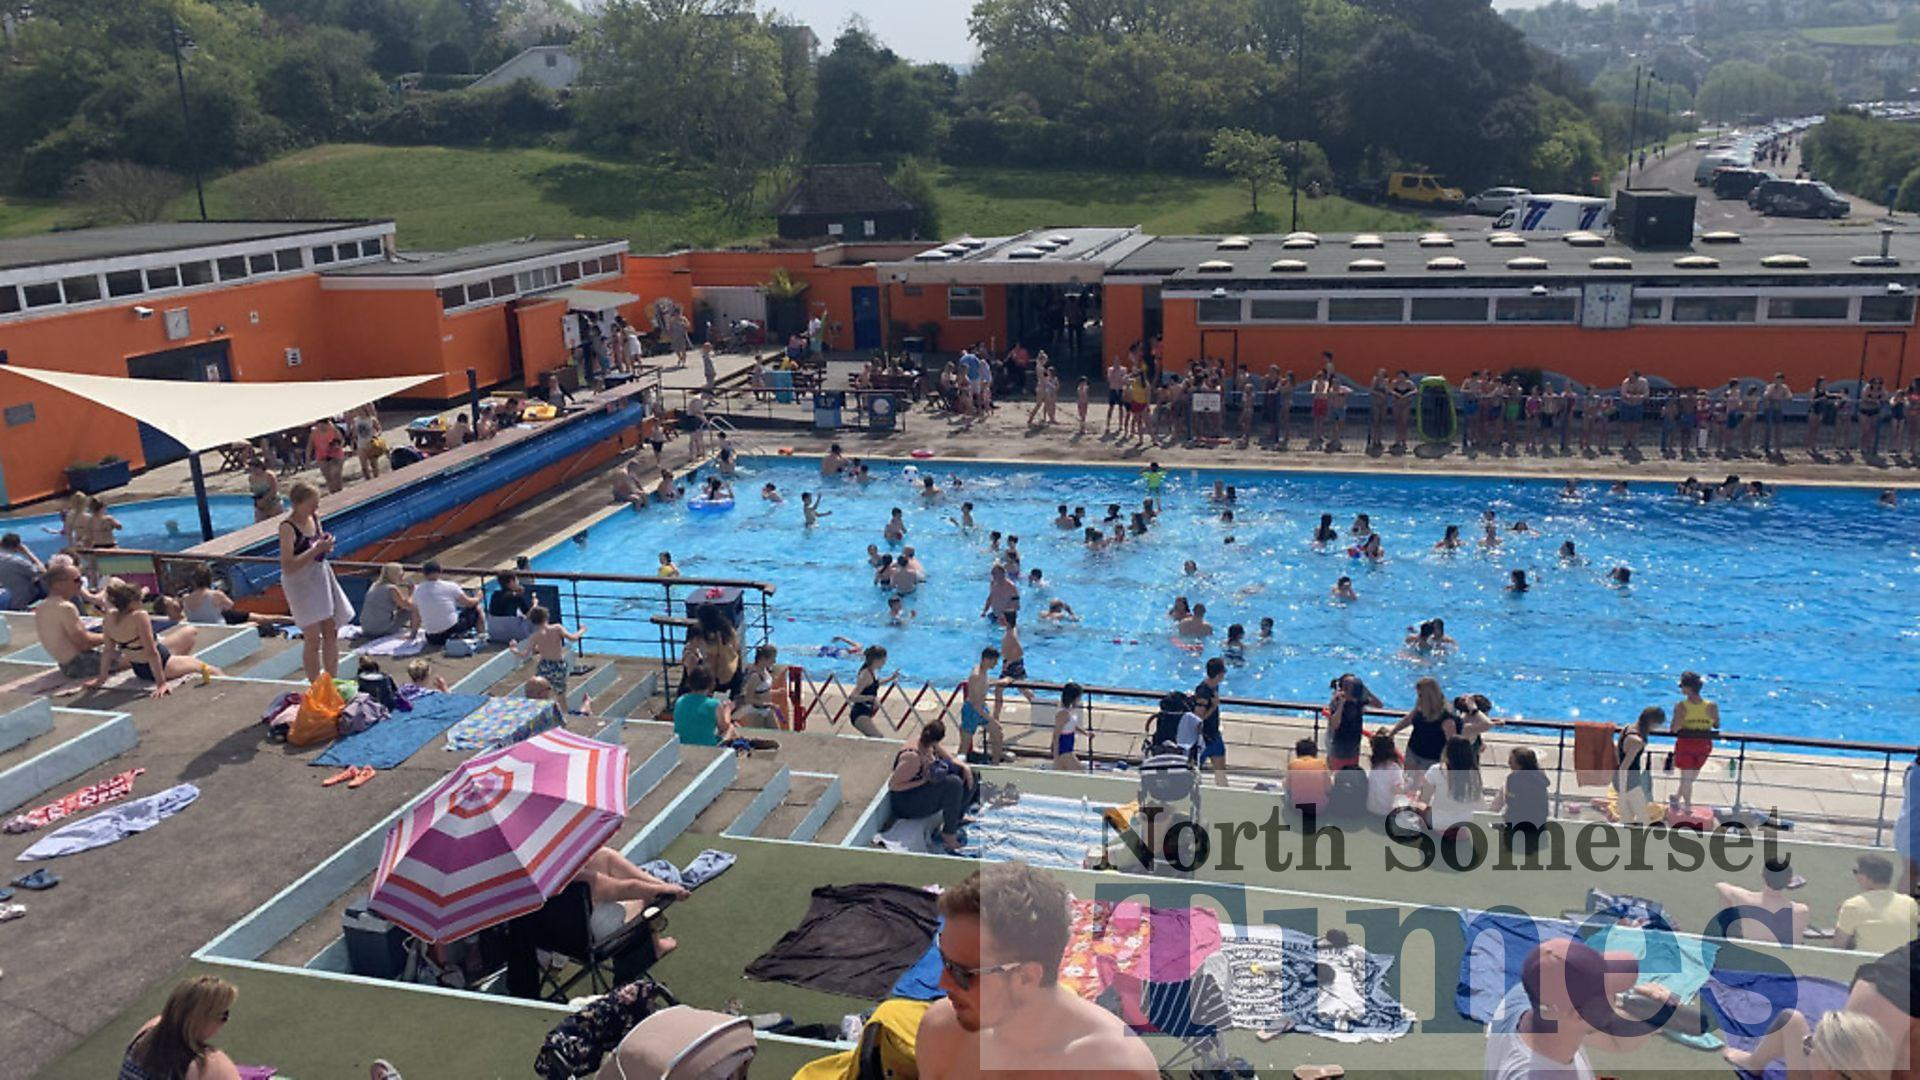 Record-breaking numbers at Portishead Open Air Pool ...